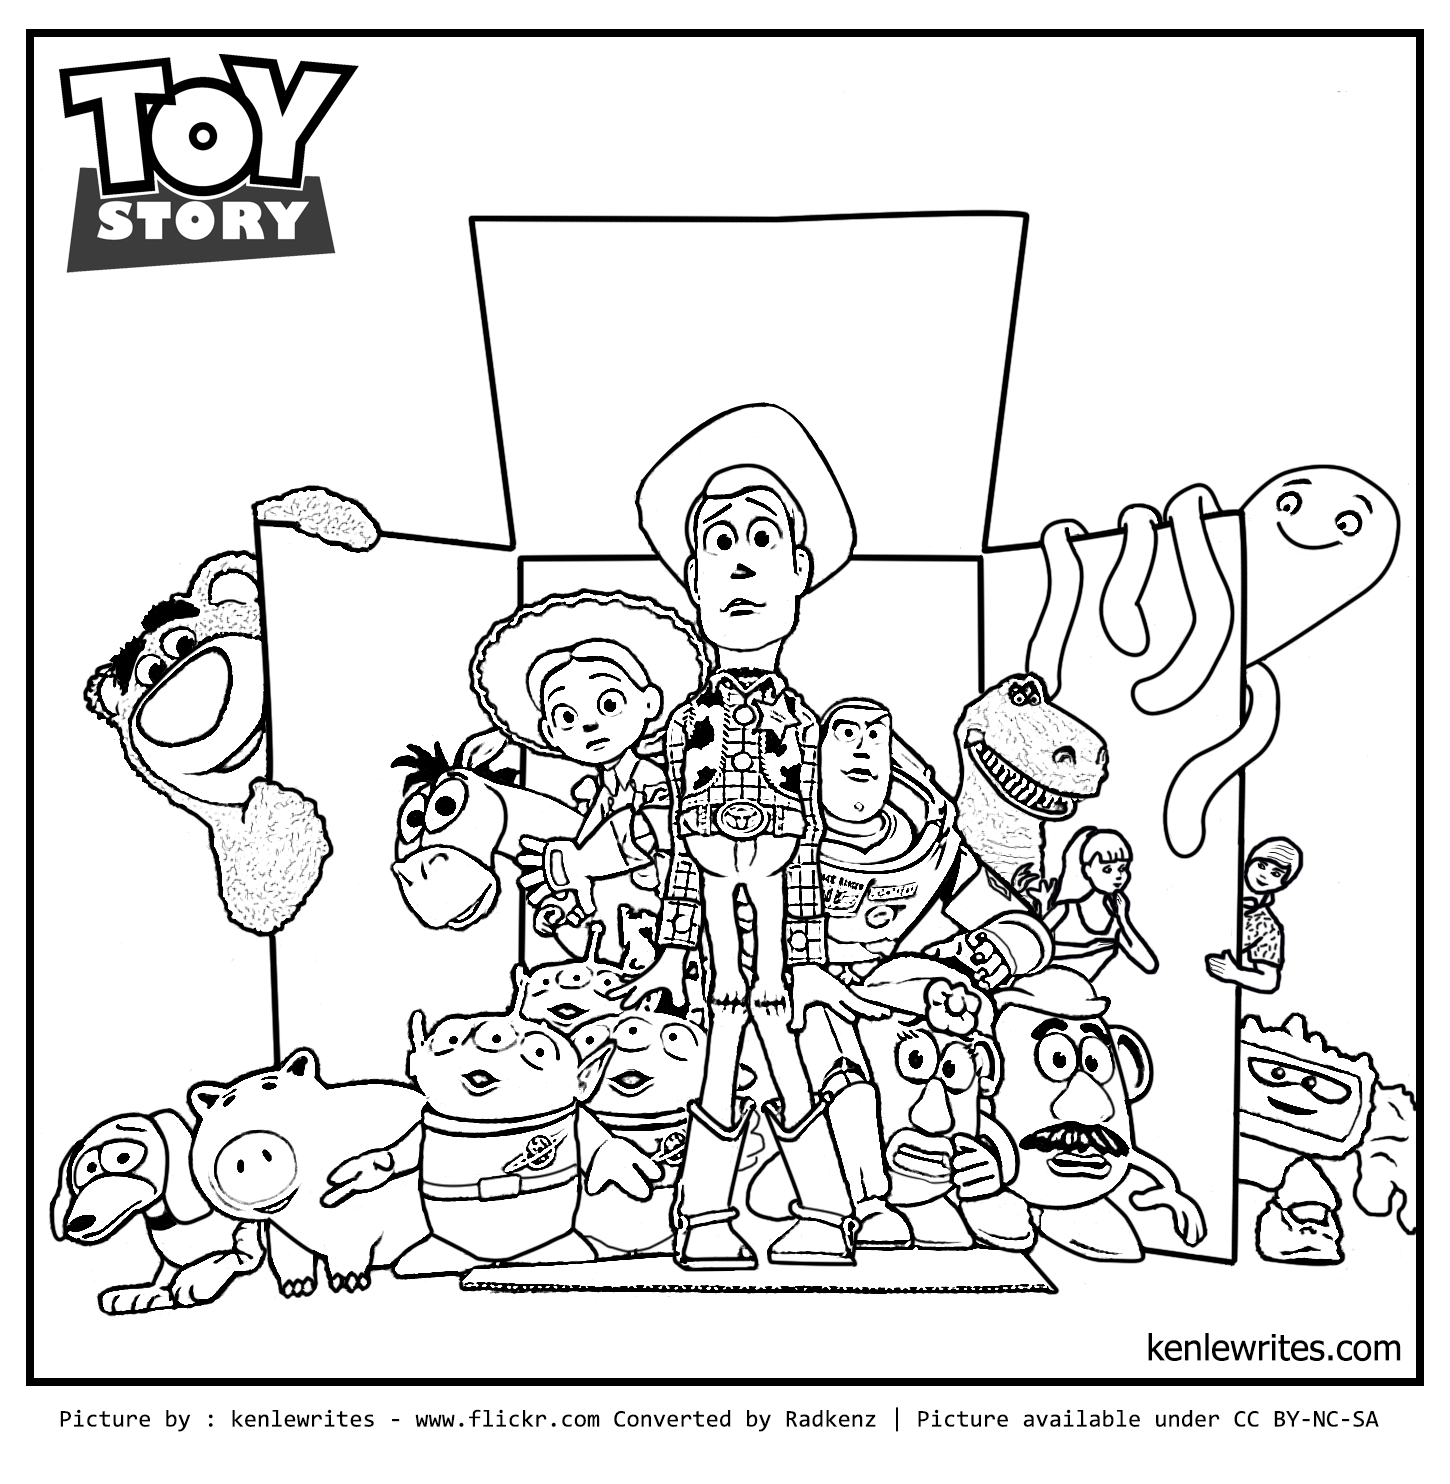 Radkenz artworks gallery toy story for Free printable coloring pages toy story 3